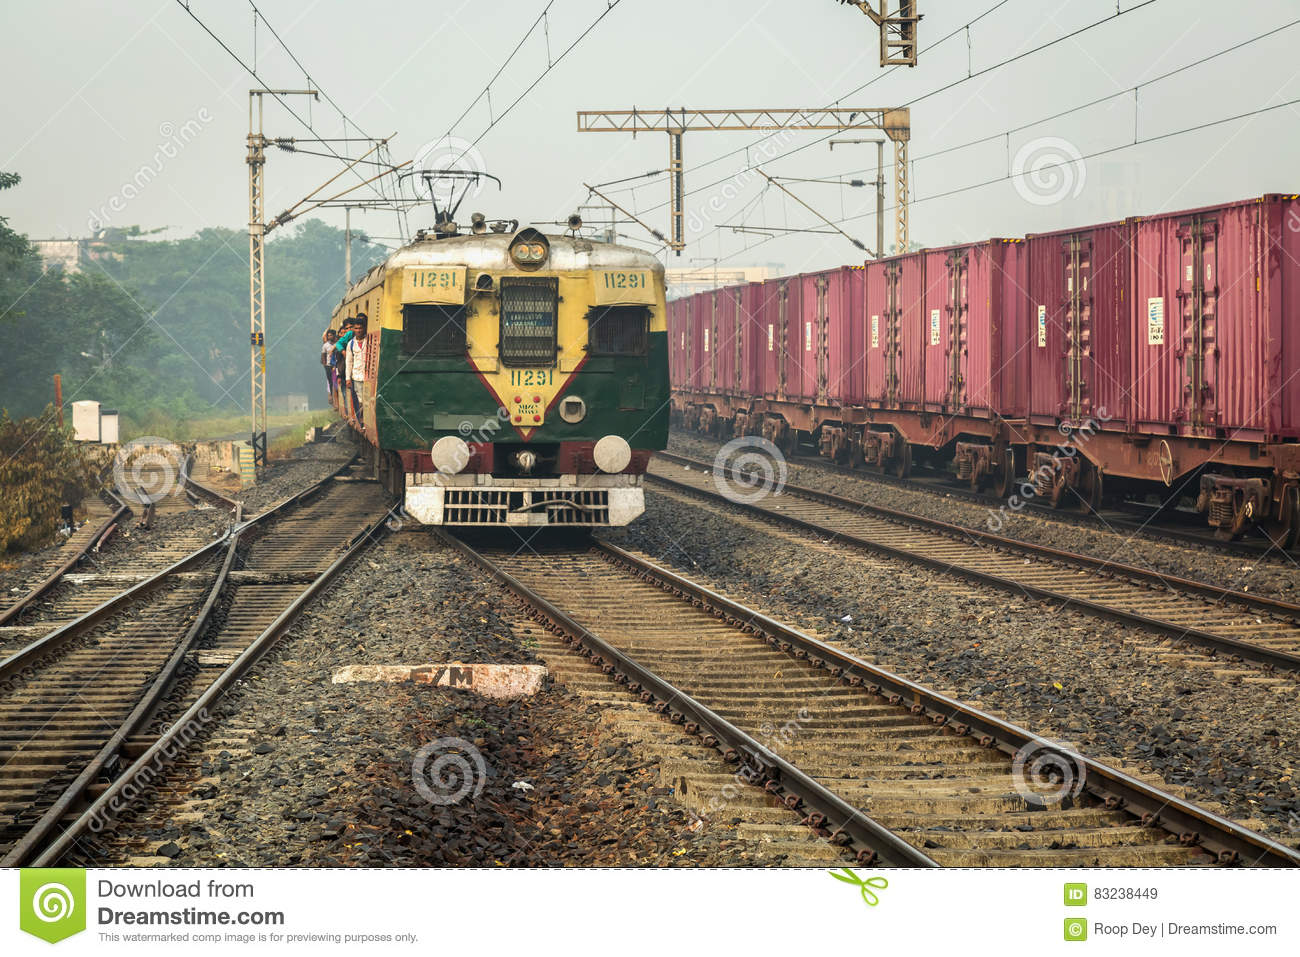 Indian Railways Crowded Local Train About To Enter A Station